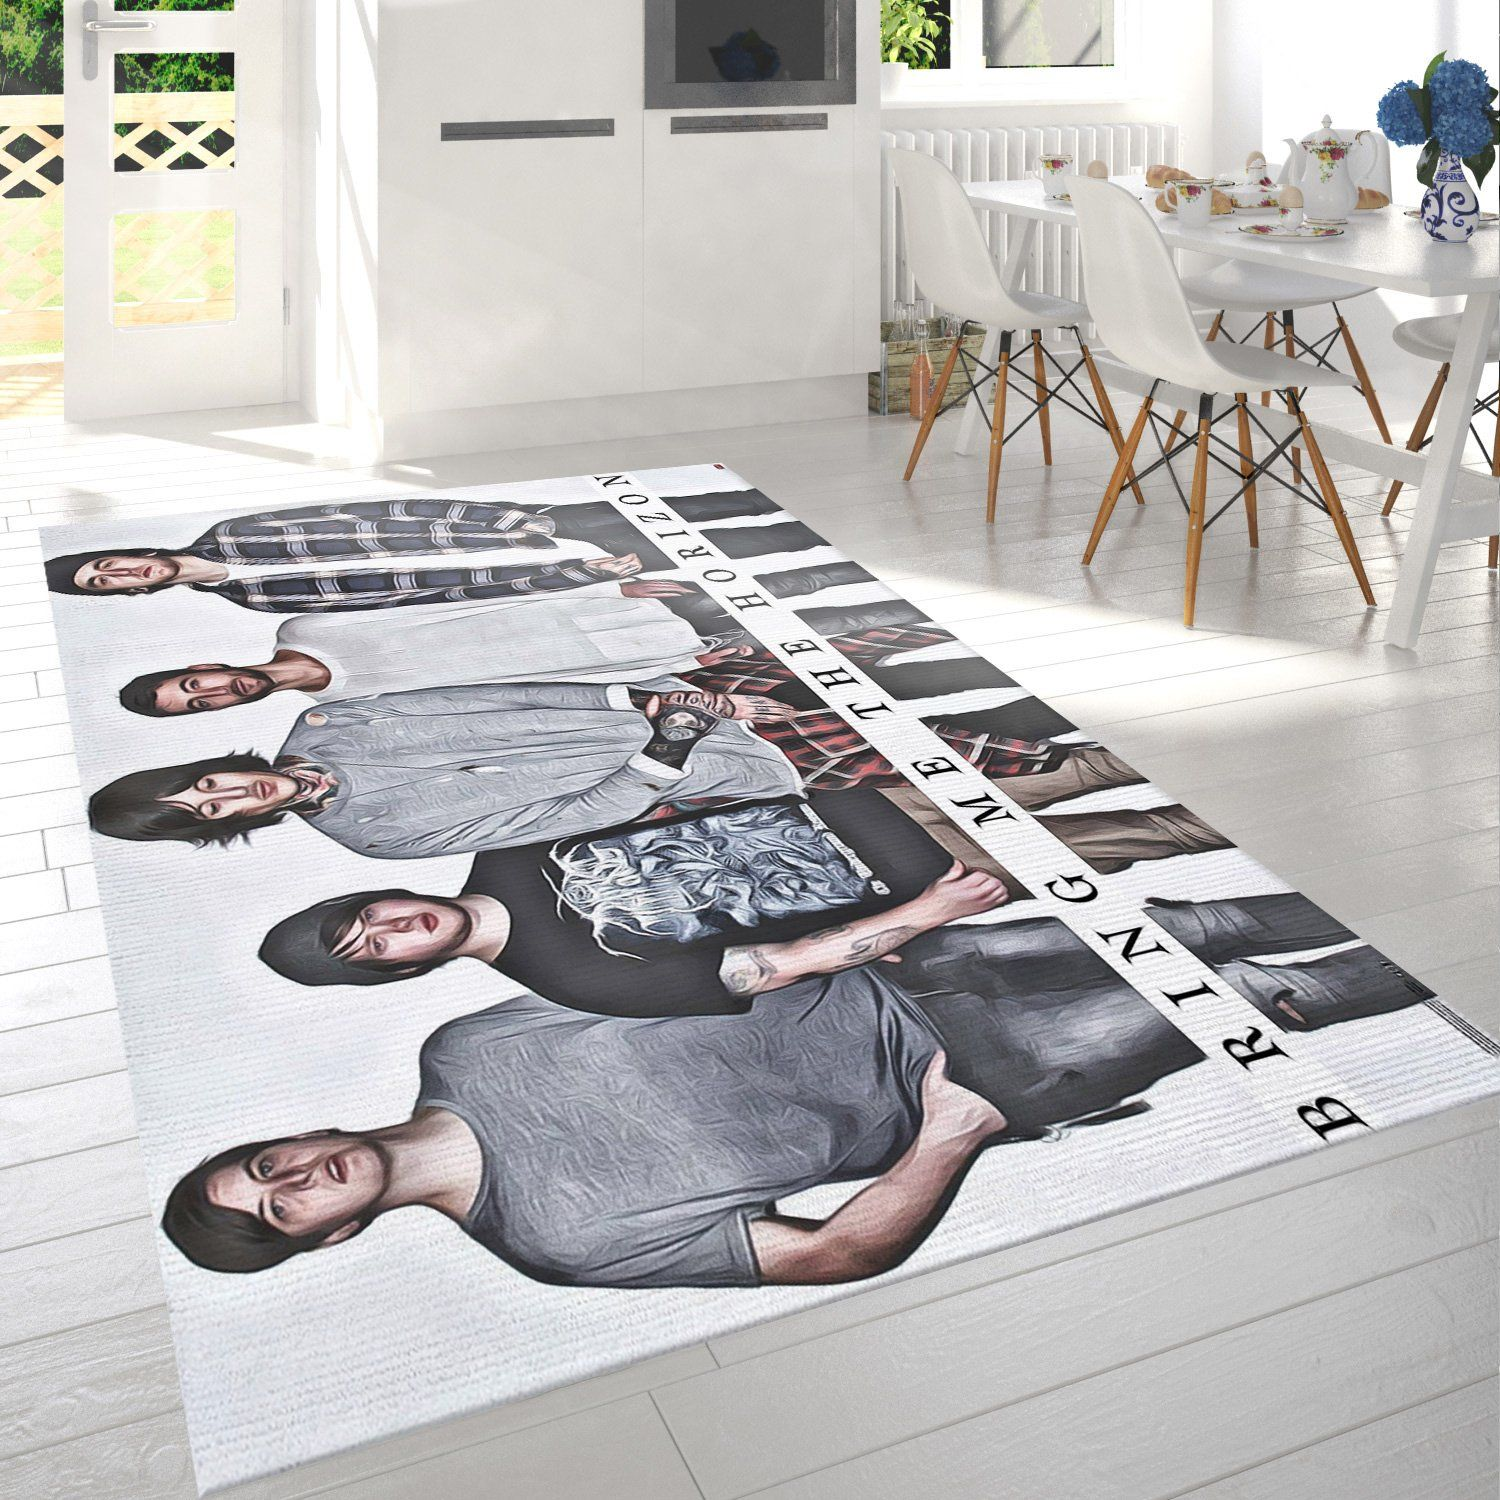 Bring Me The Horizon RugBring Me The Horizon Rug